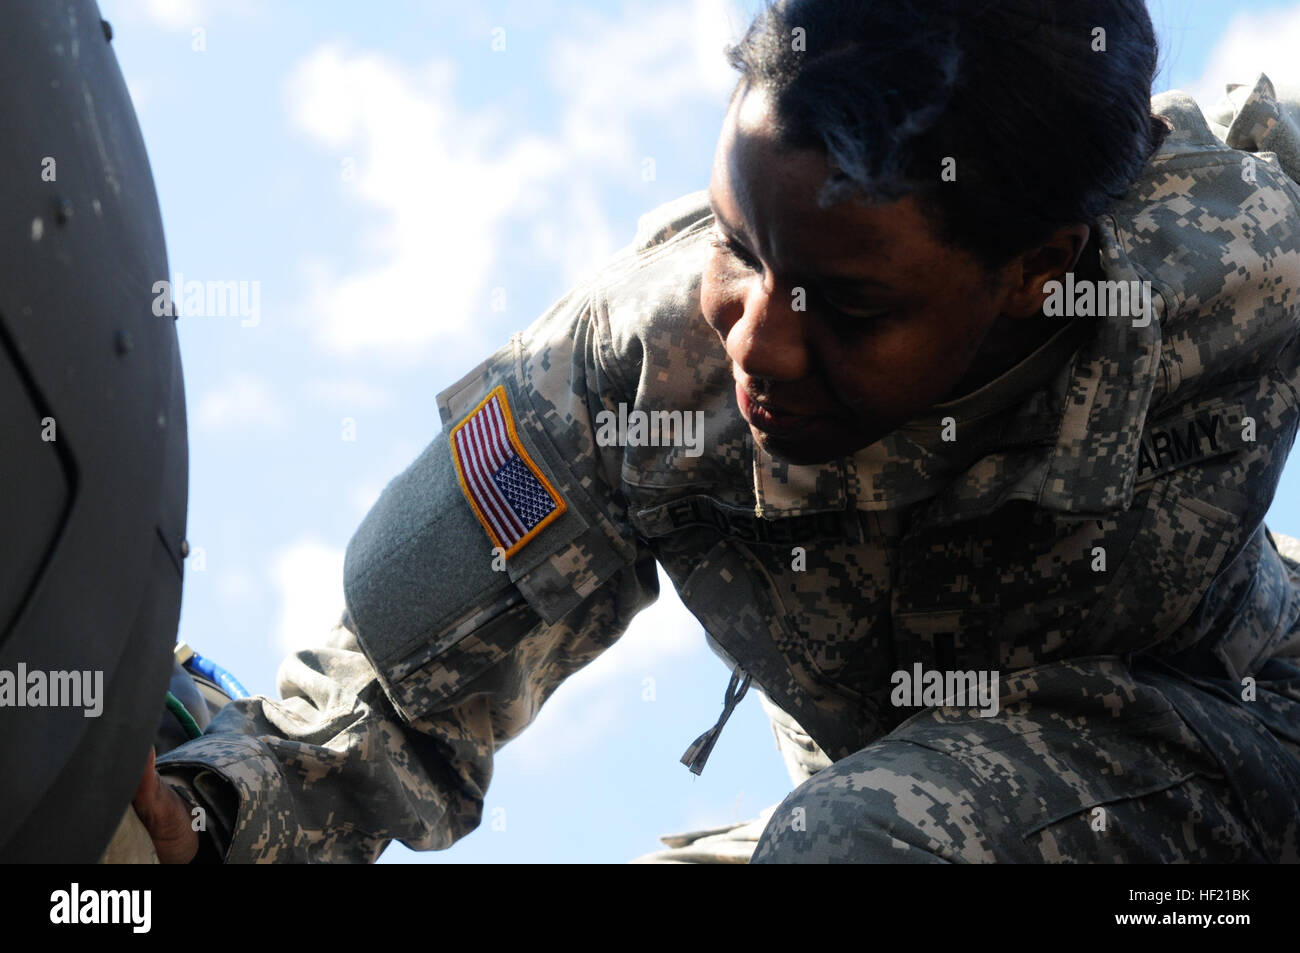 Army 1st Lt. Demetria N. Elosiebo currently a platoon leader with D. Co. (Air Ambulance) 1-224th Aviaton Regiment - Stock Image